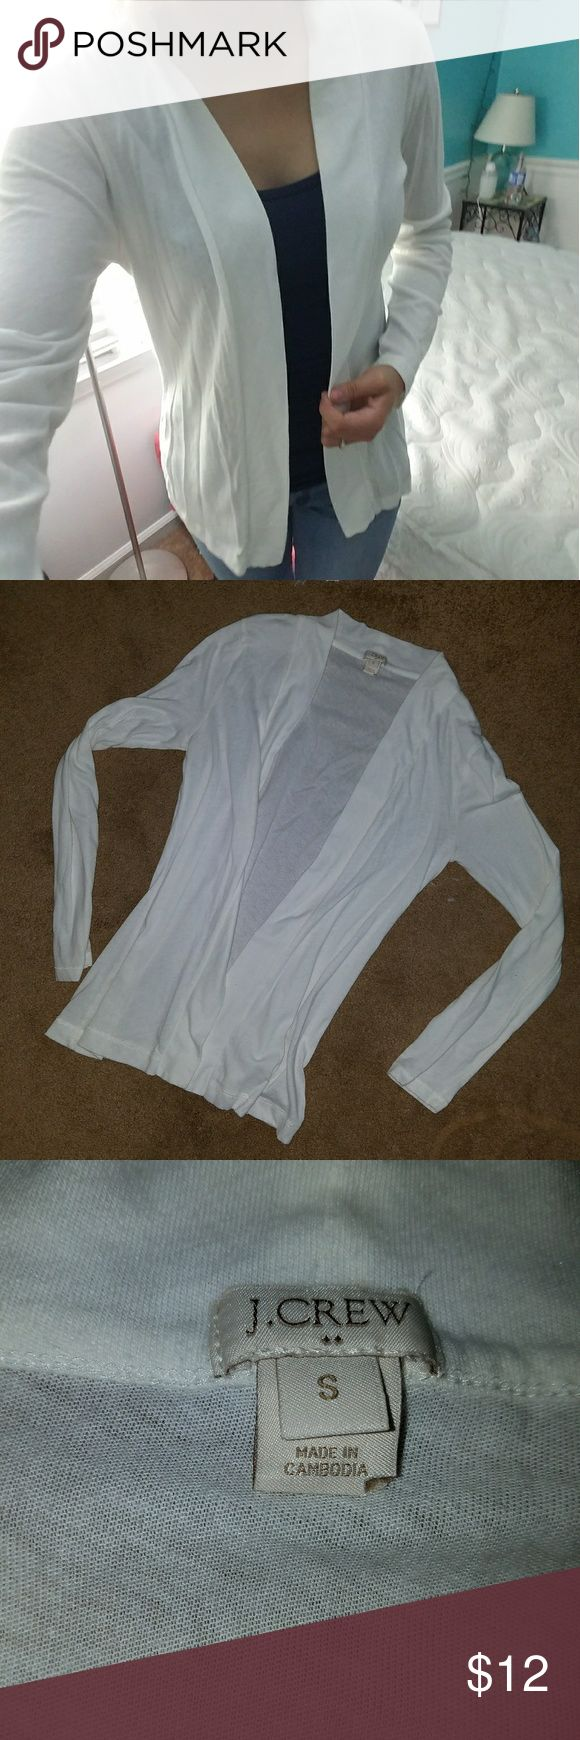 J crew white cardigan Long sleeve cardigan. Color is white. Brand is J crew. J. Crew Sweaters Cardigans